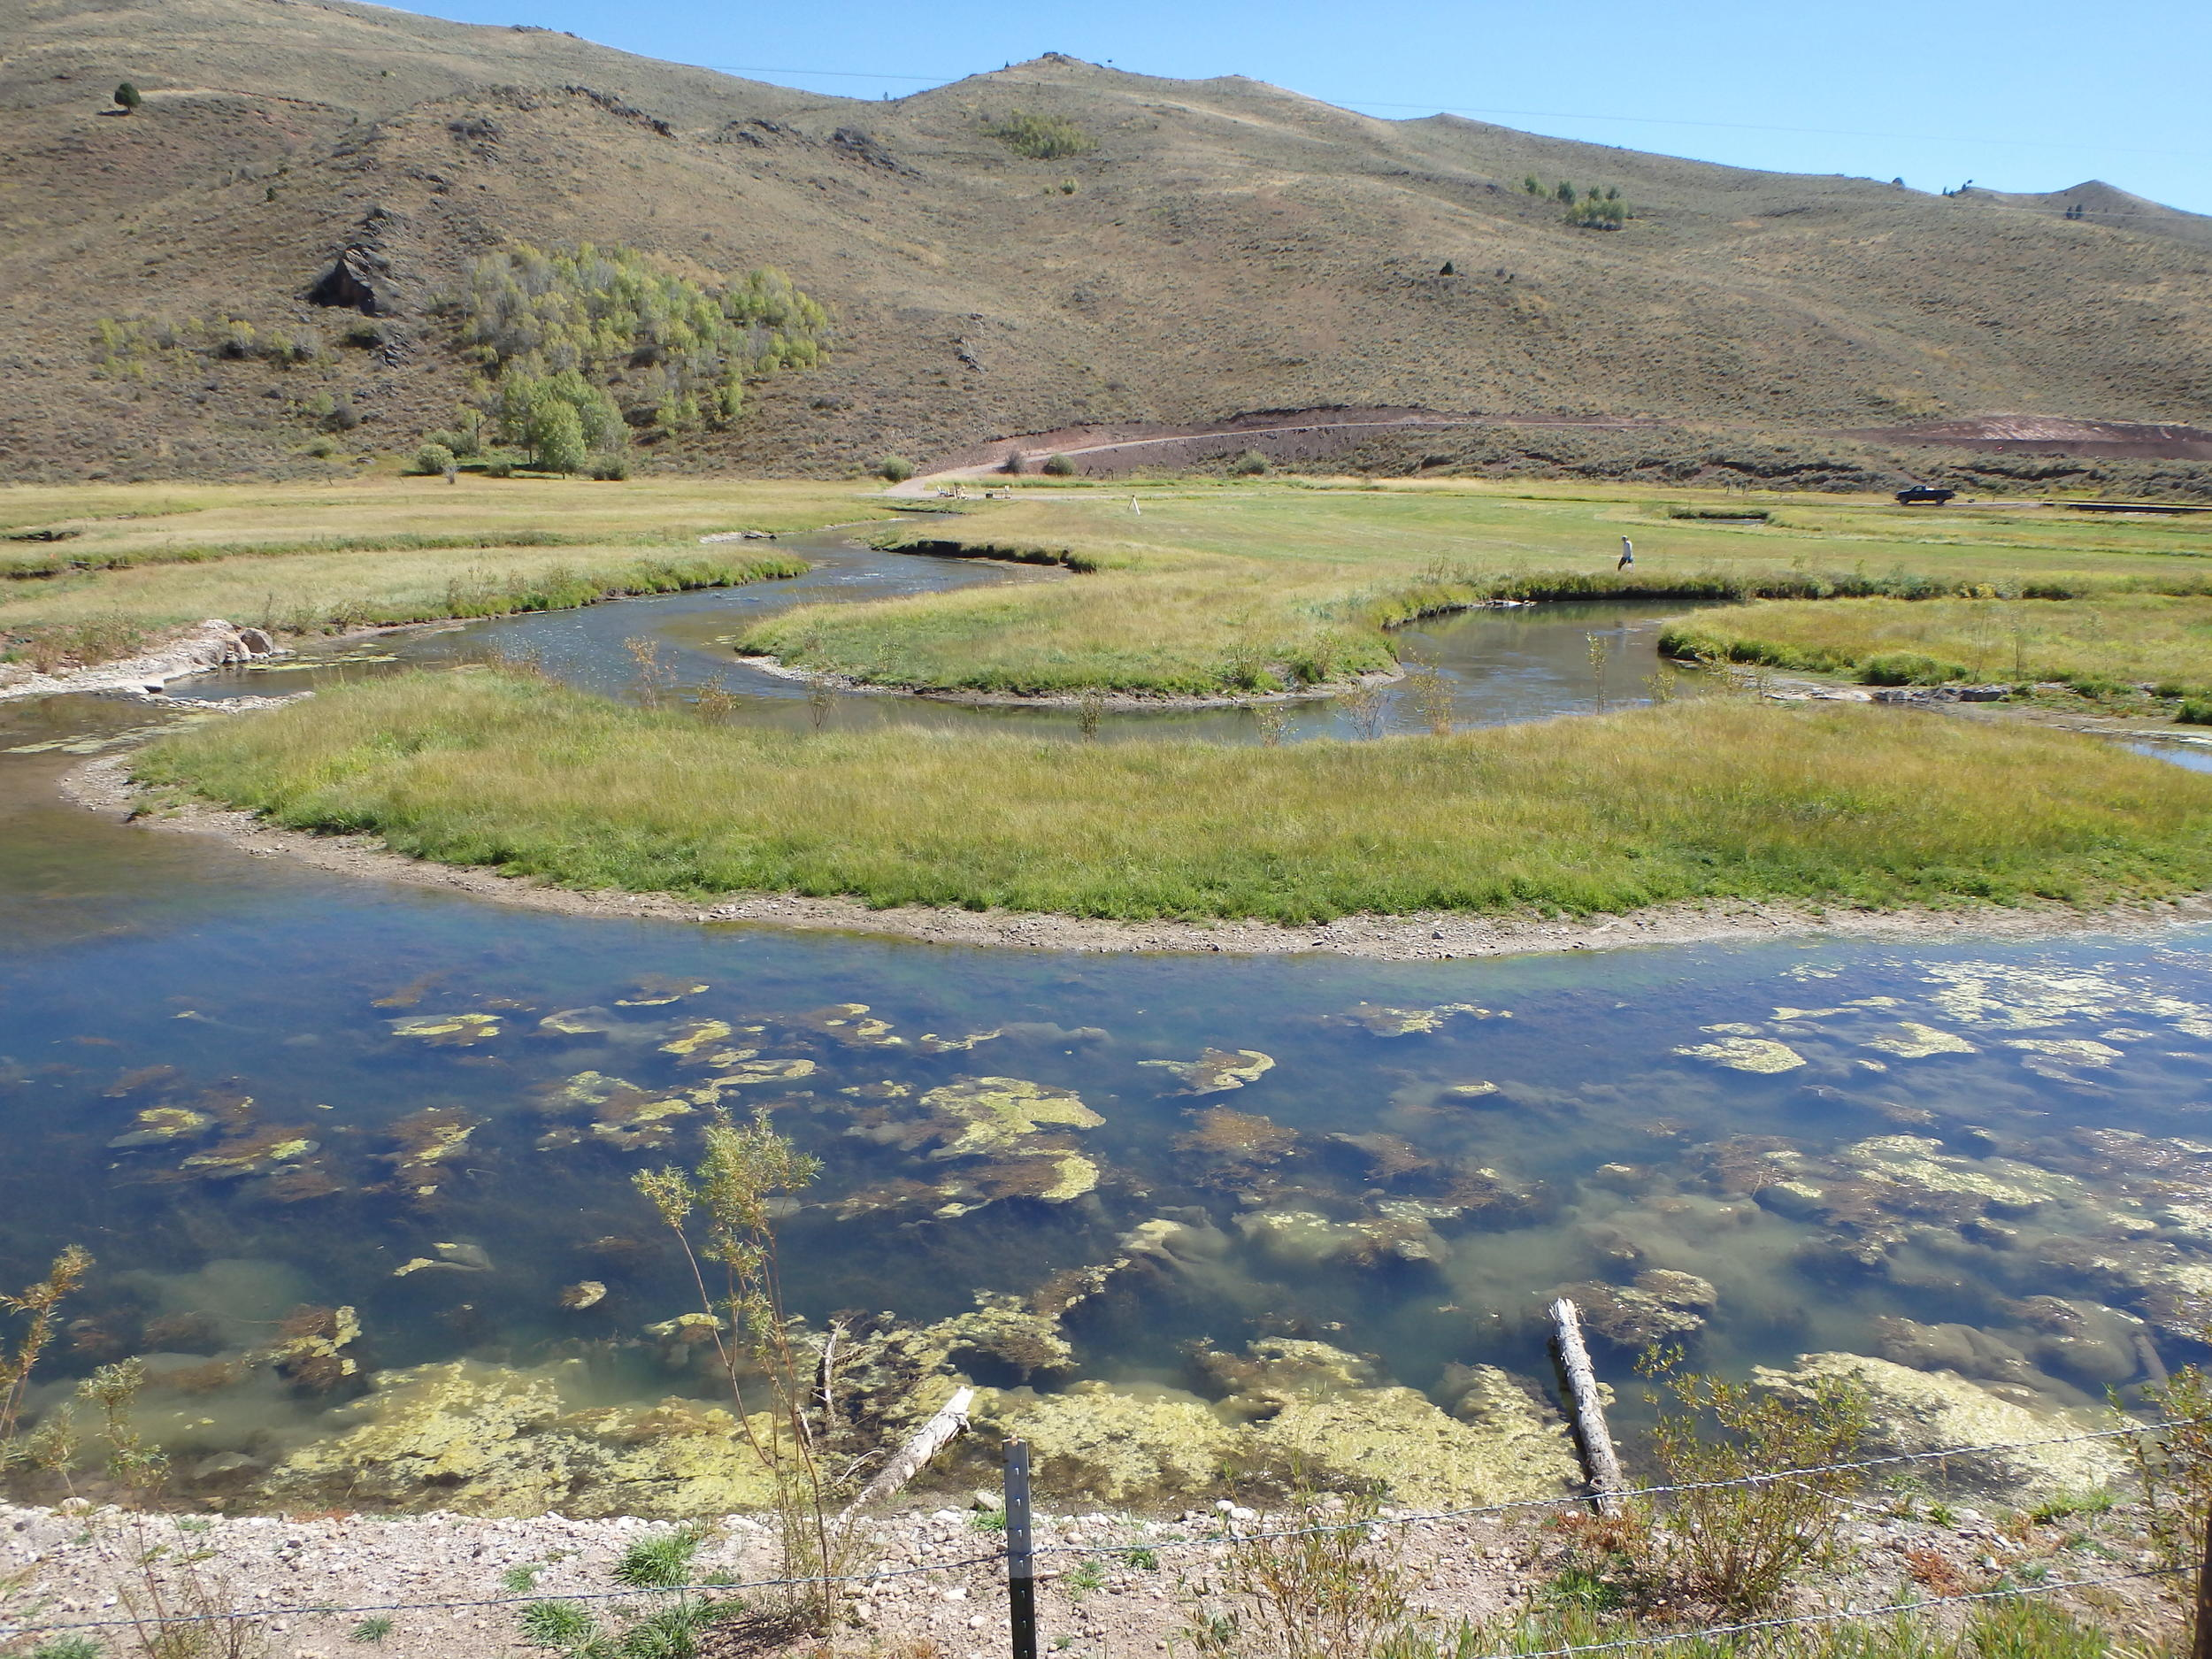 Stream Restoration oxbow created by re-routing the creek to provide fish habitat and protect a road from erosion